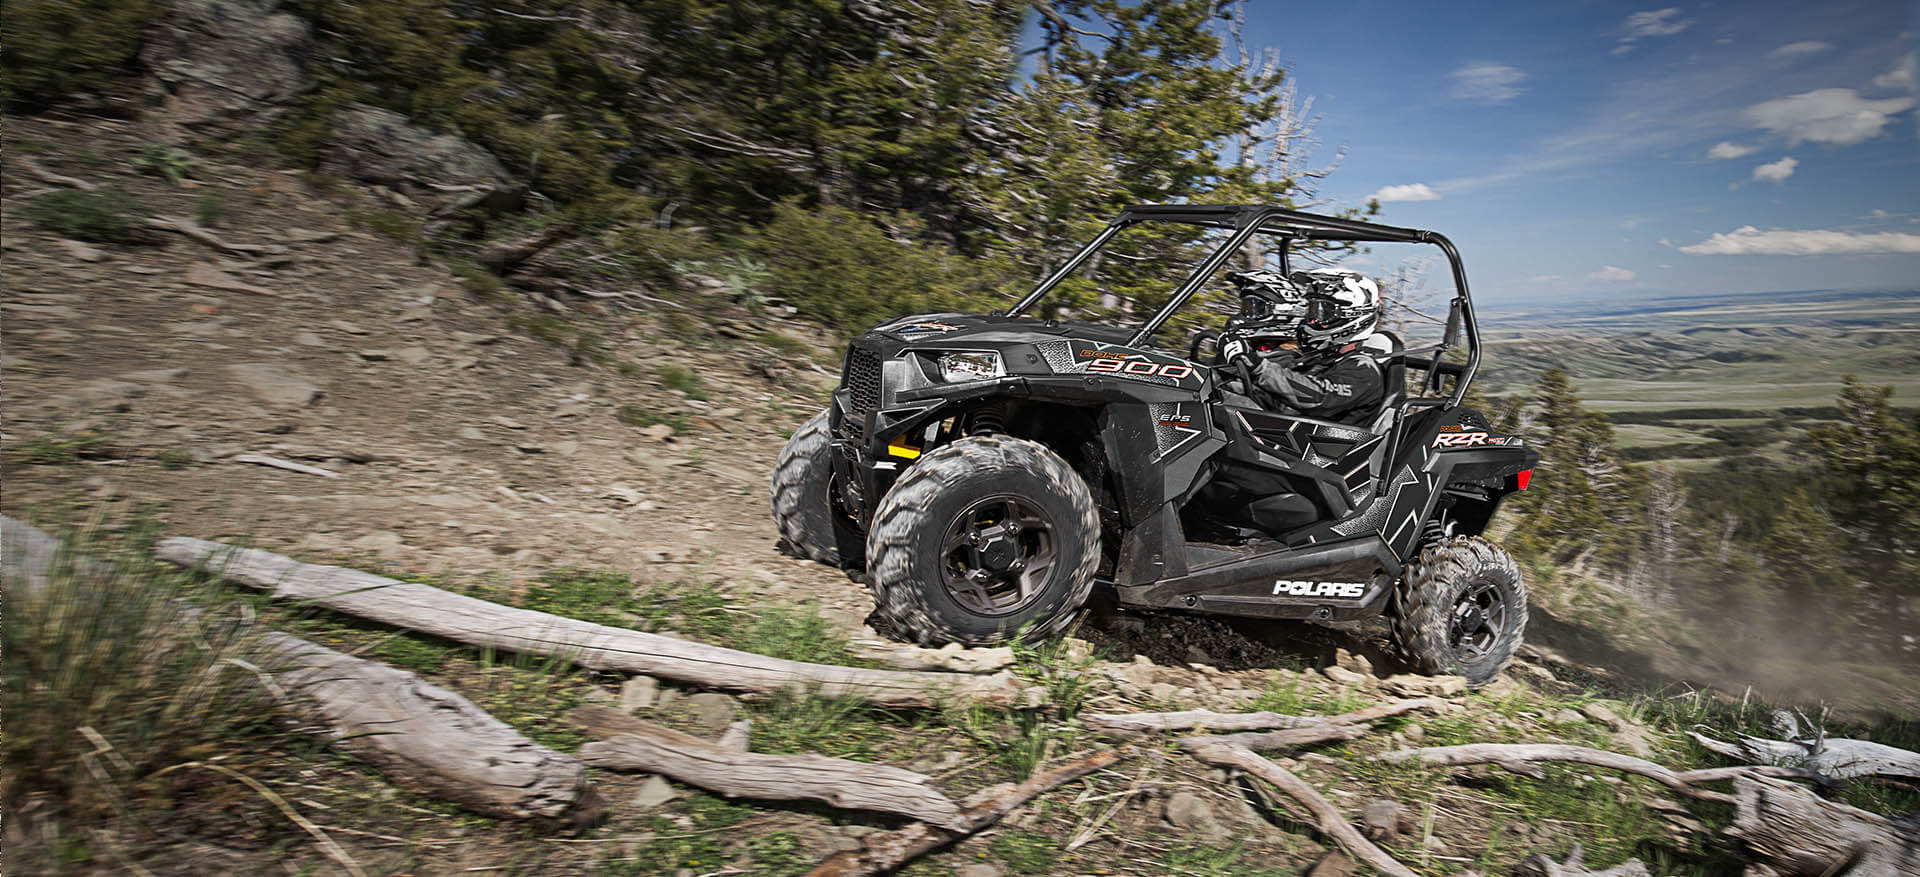 rzr-900-media-location-2-lg